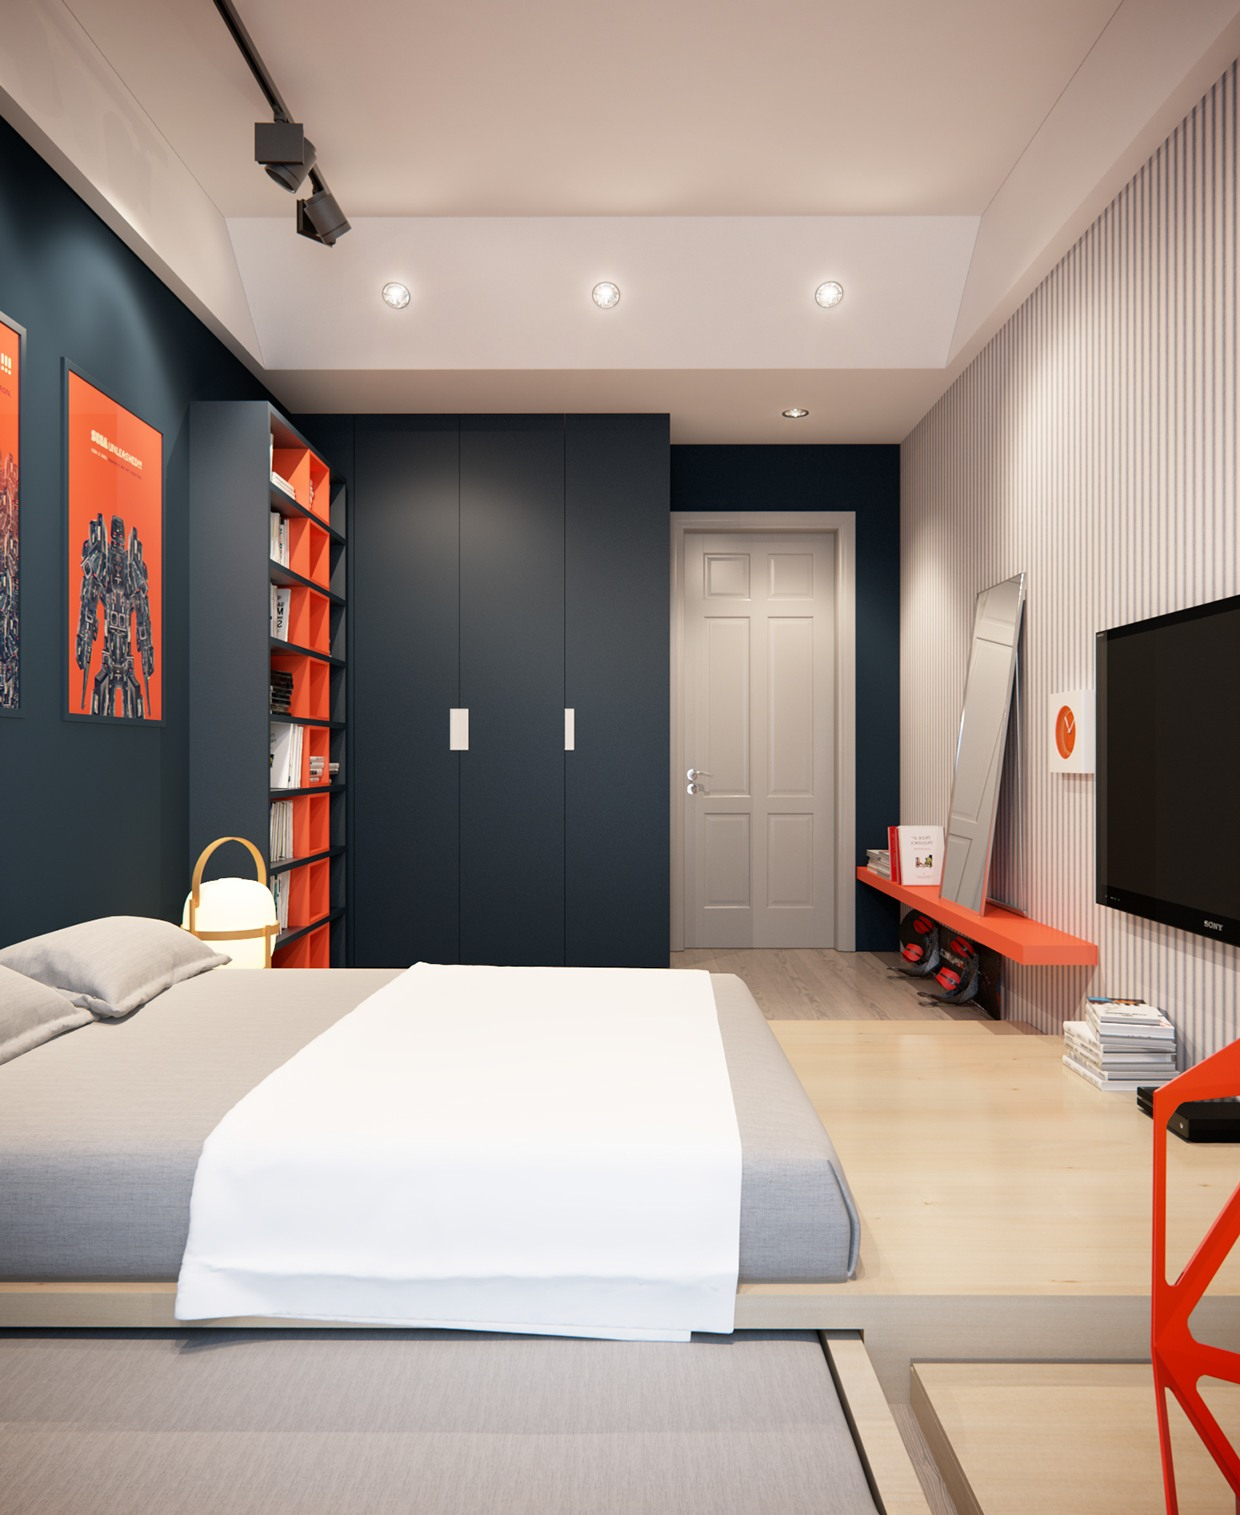 Boys bedroom design interior design ideas for Bedroom designs interior